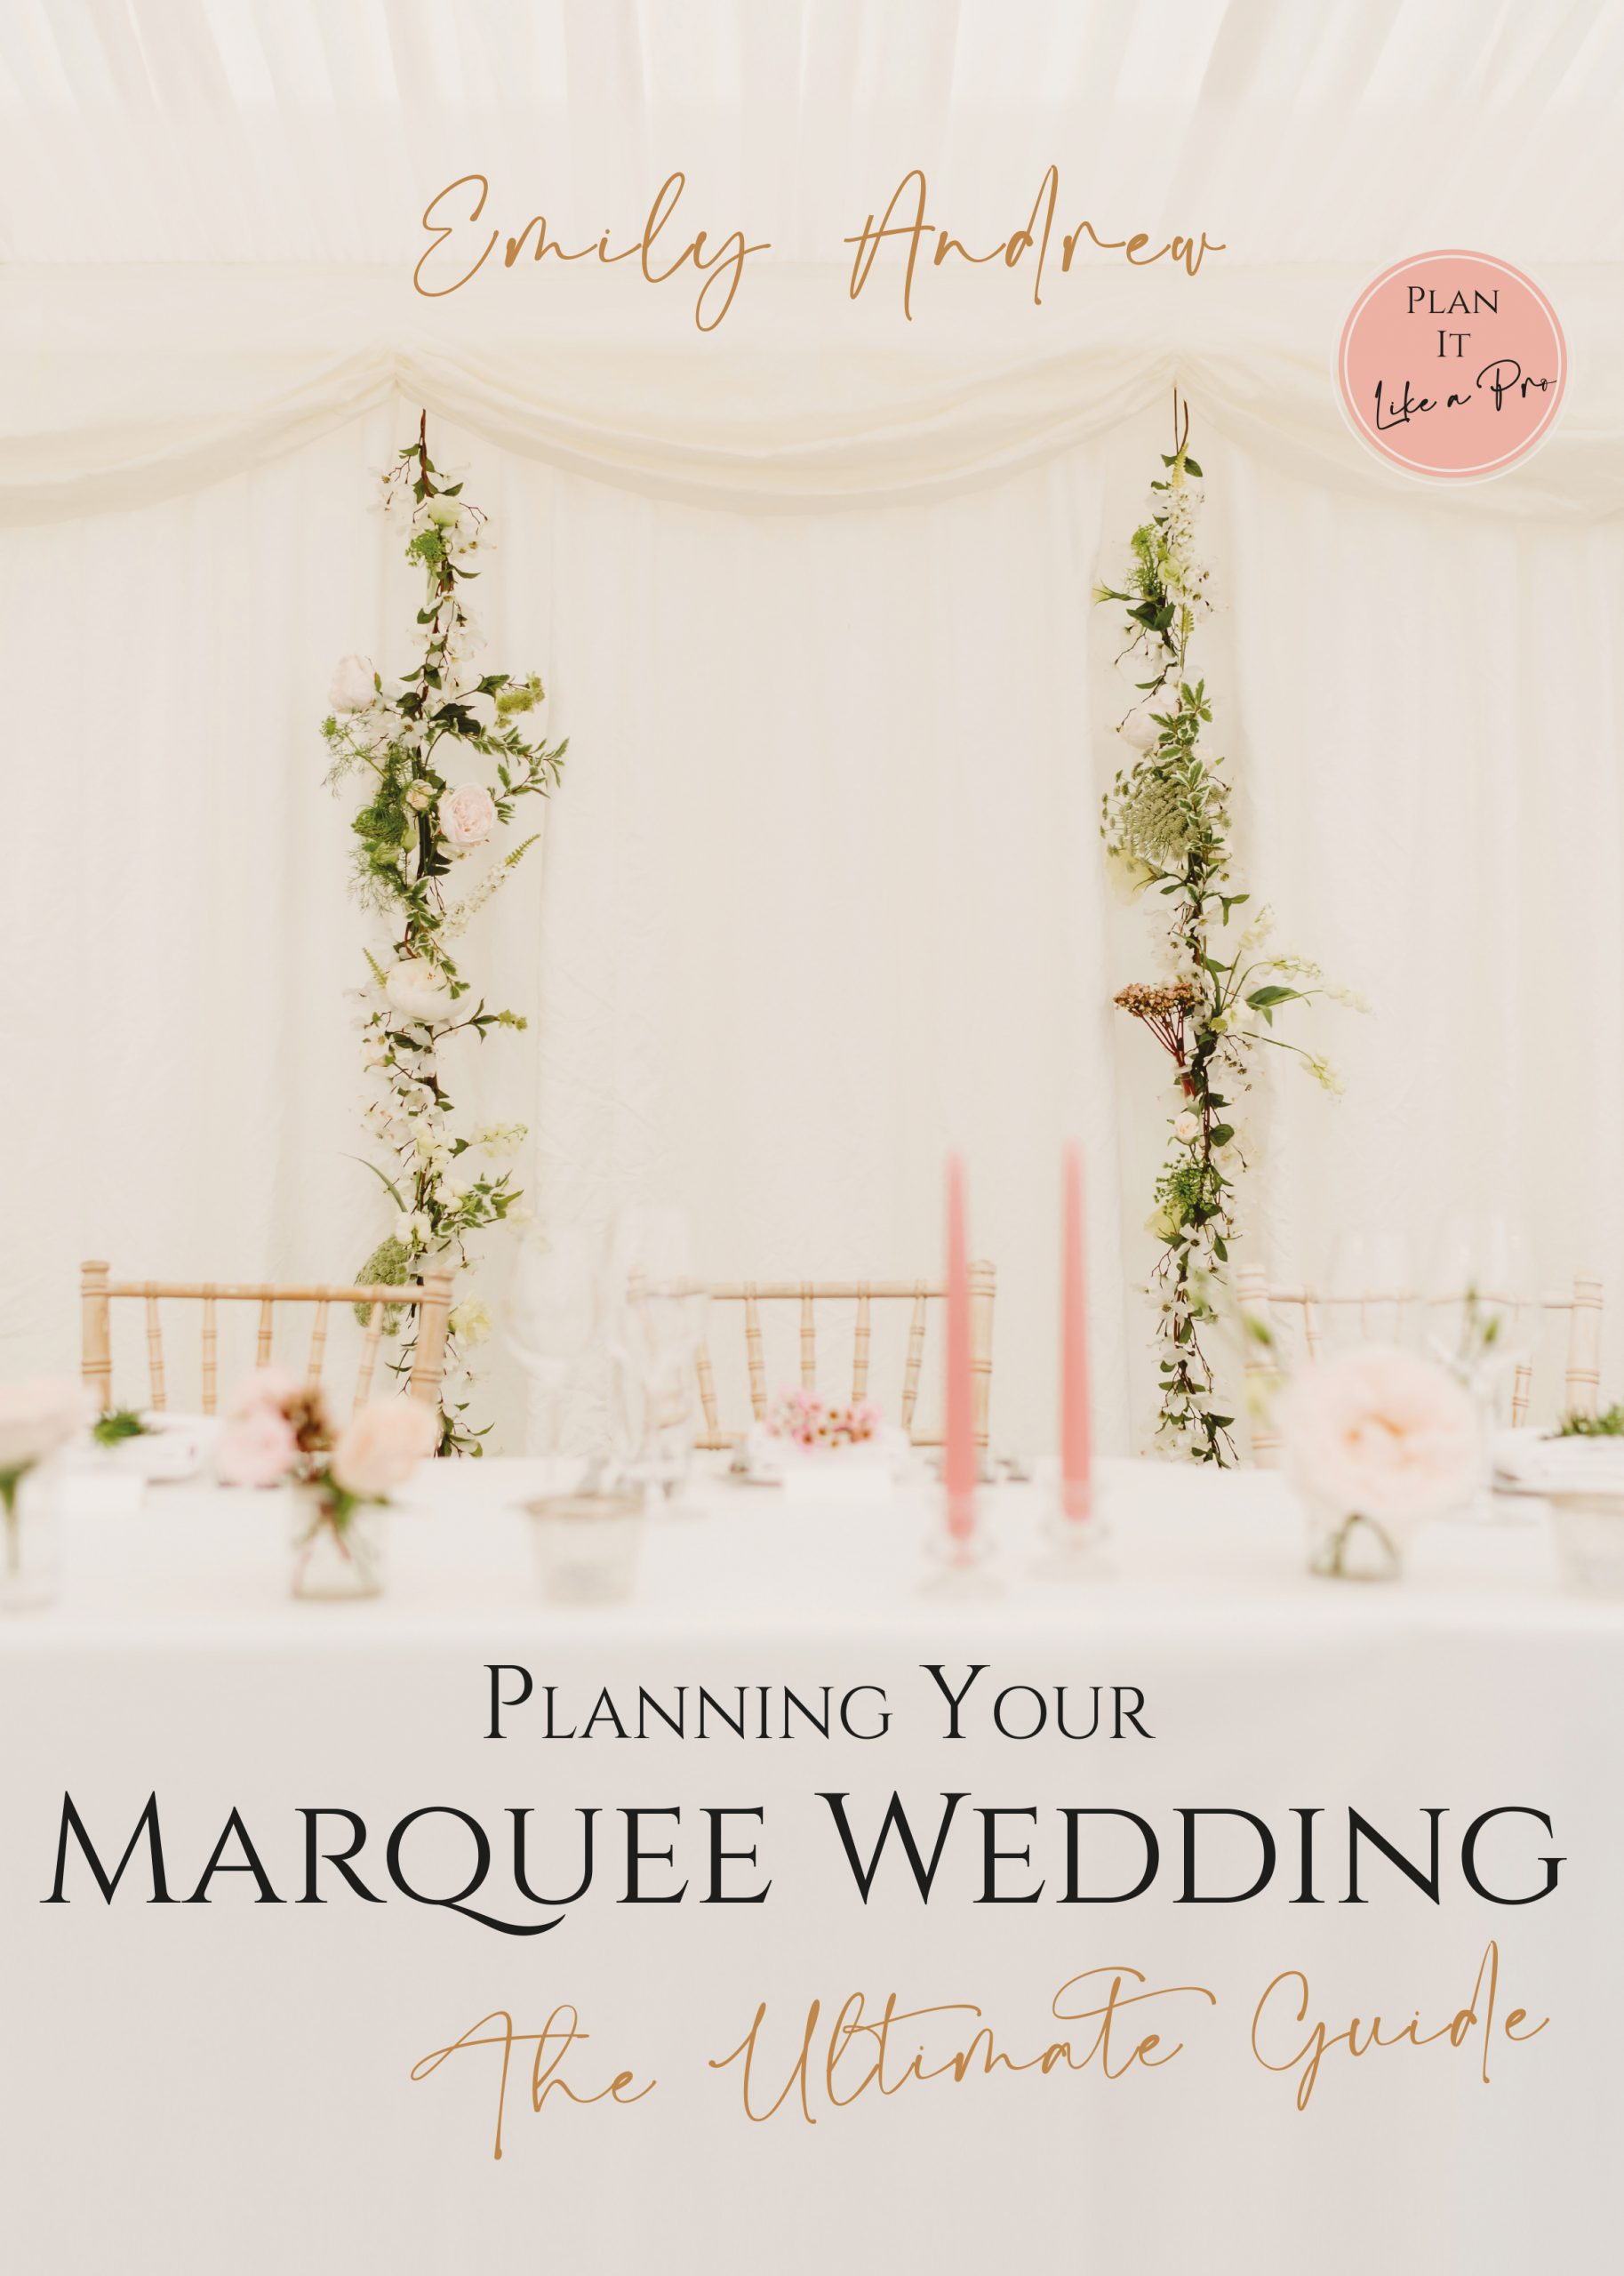 Planning Your Marquee Wedding - Emily Andrew